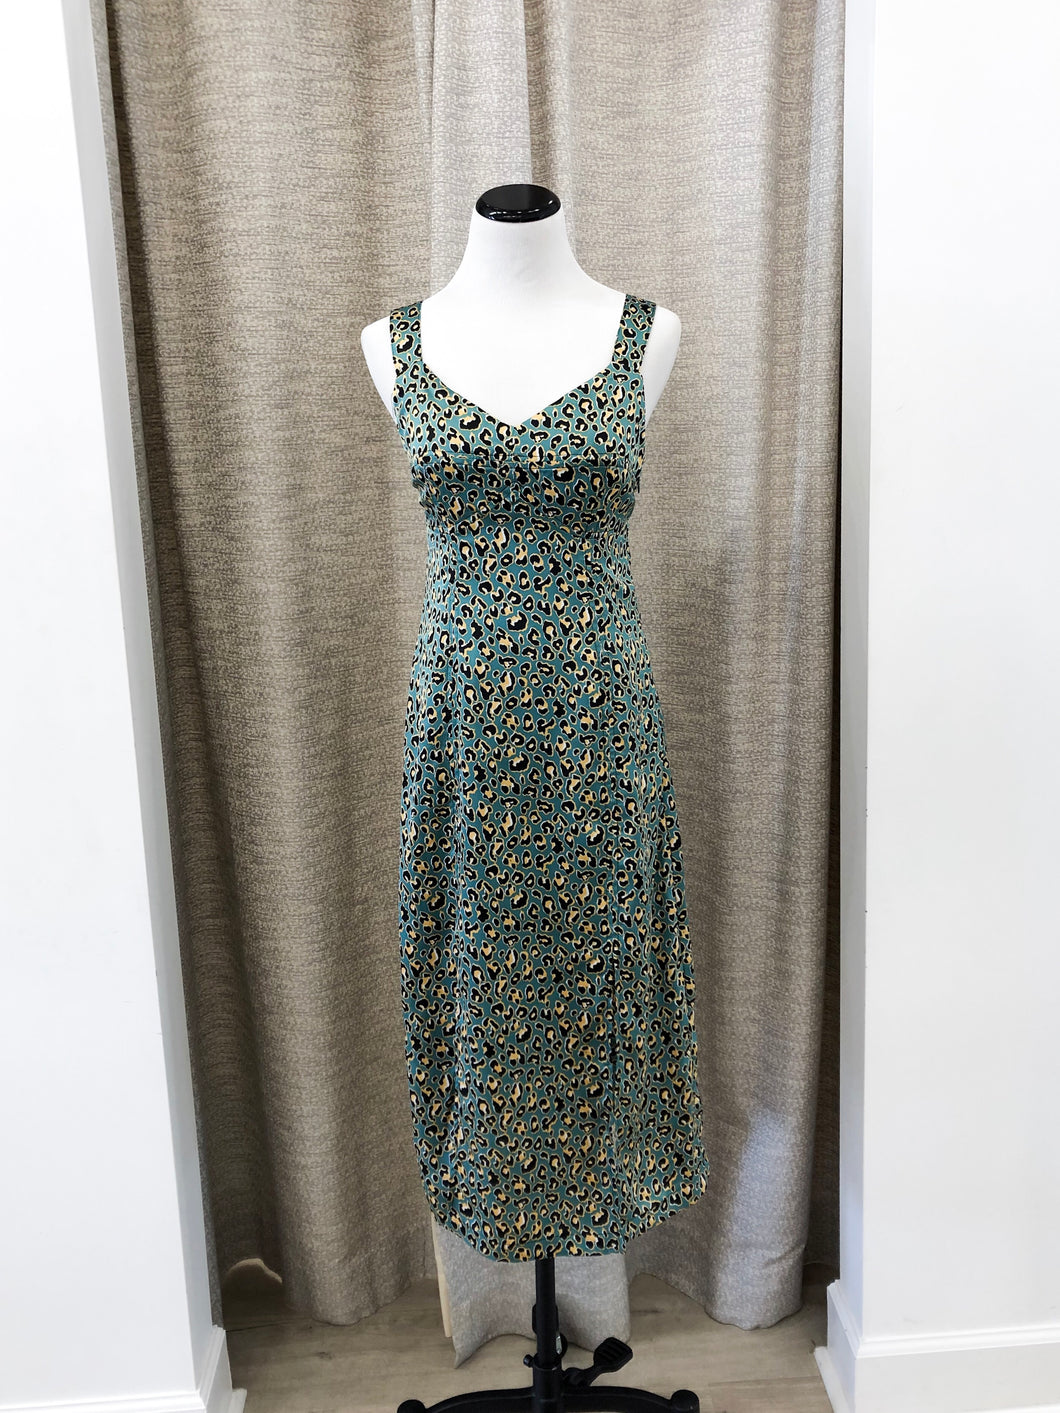 Elle Sleeveless Slit Dress in Green Leopard - FINAL SALE